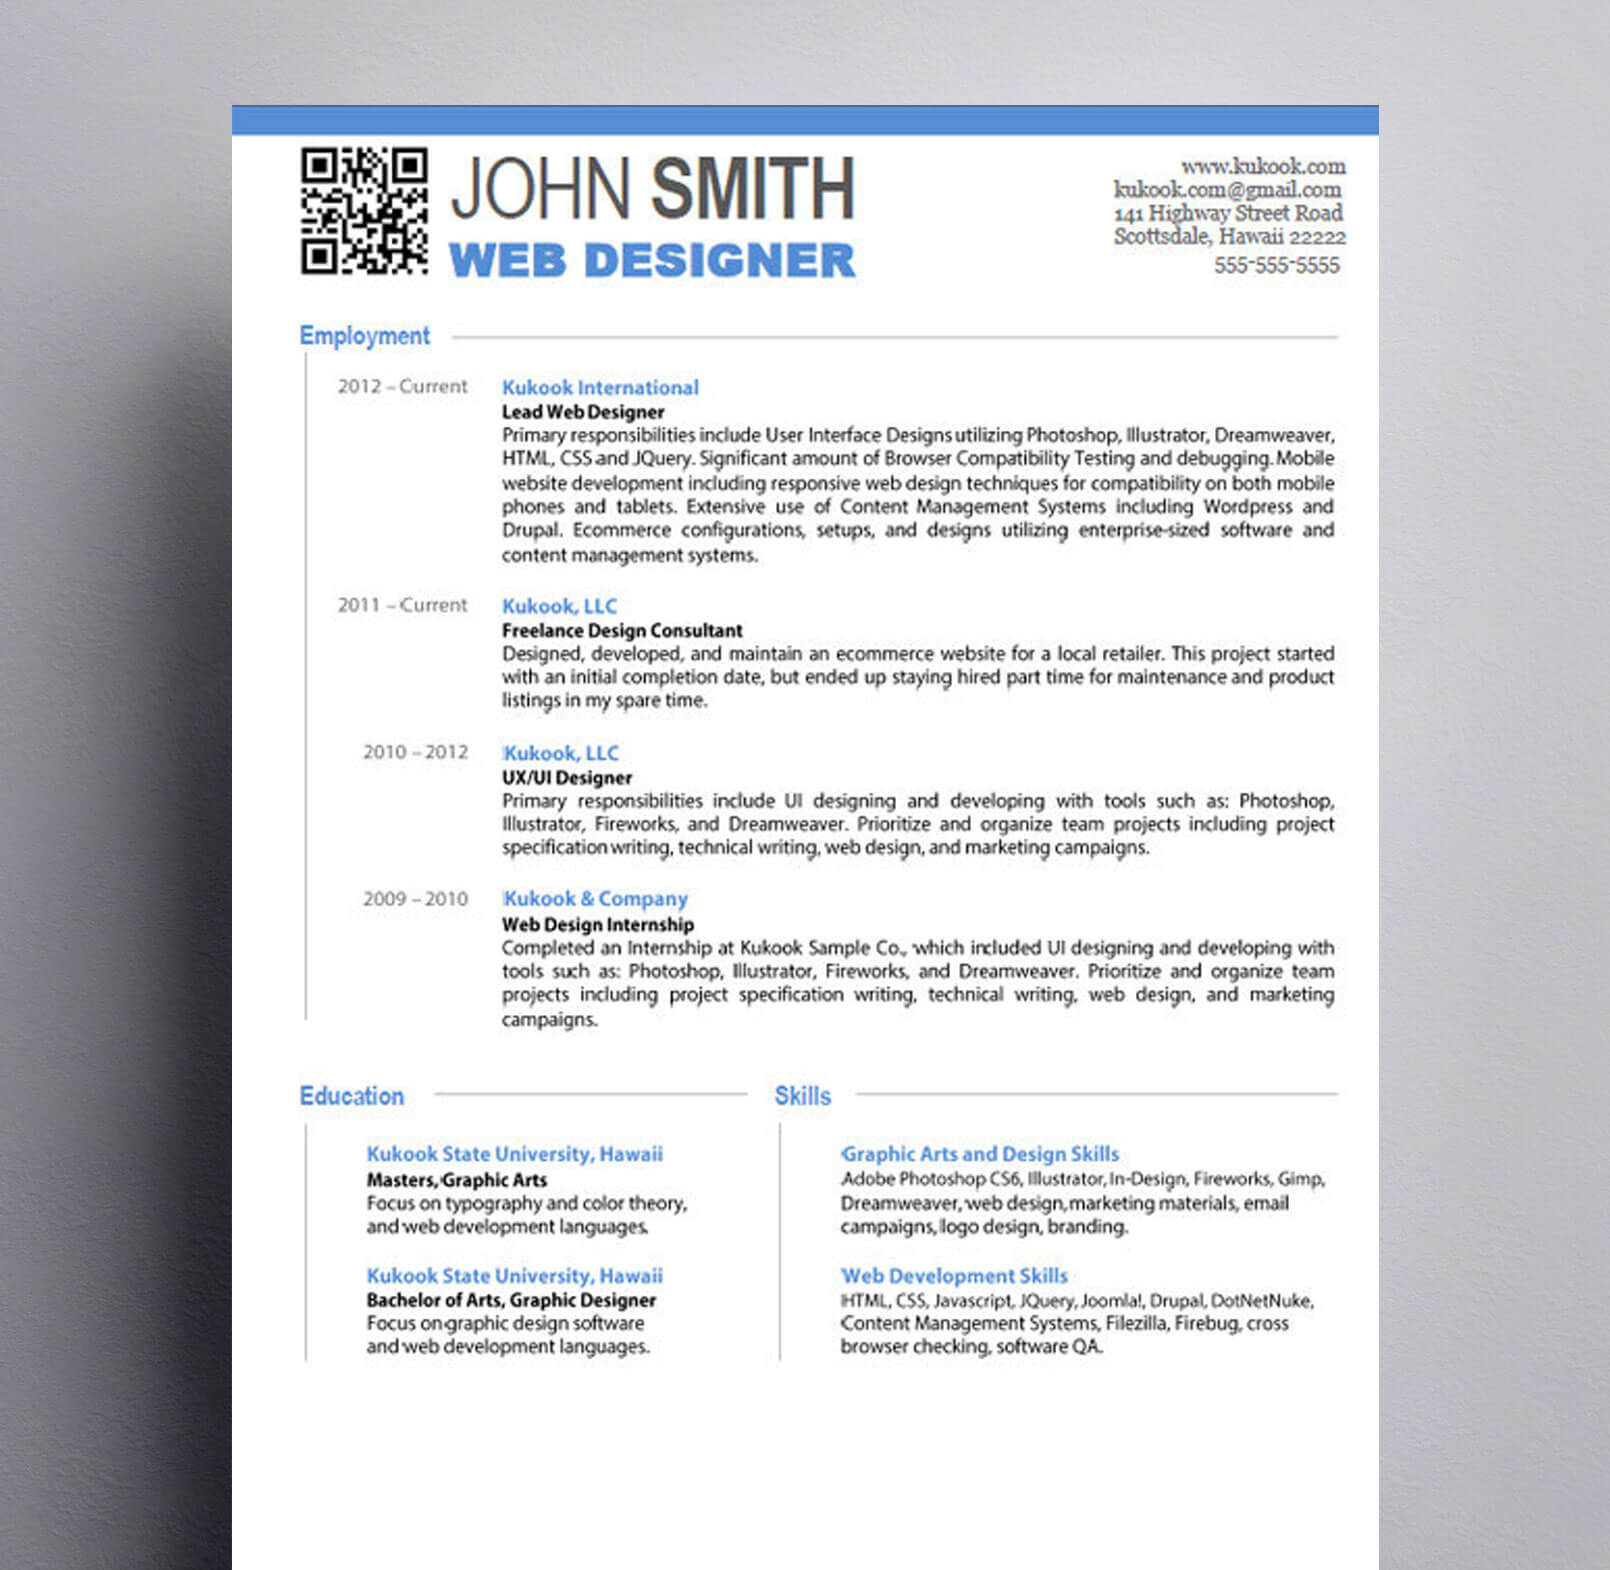 graphic design resume - Graphic Designer Resume